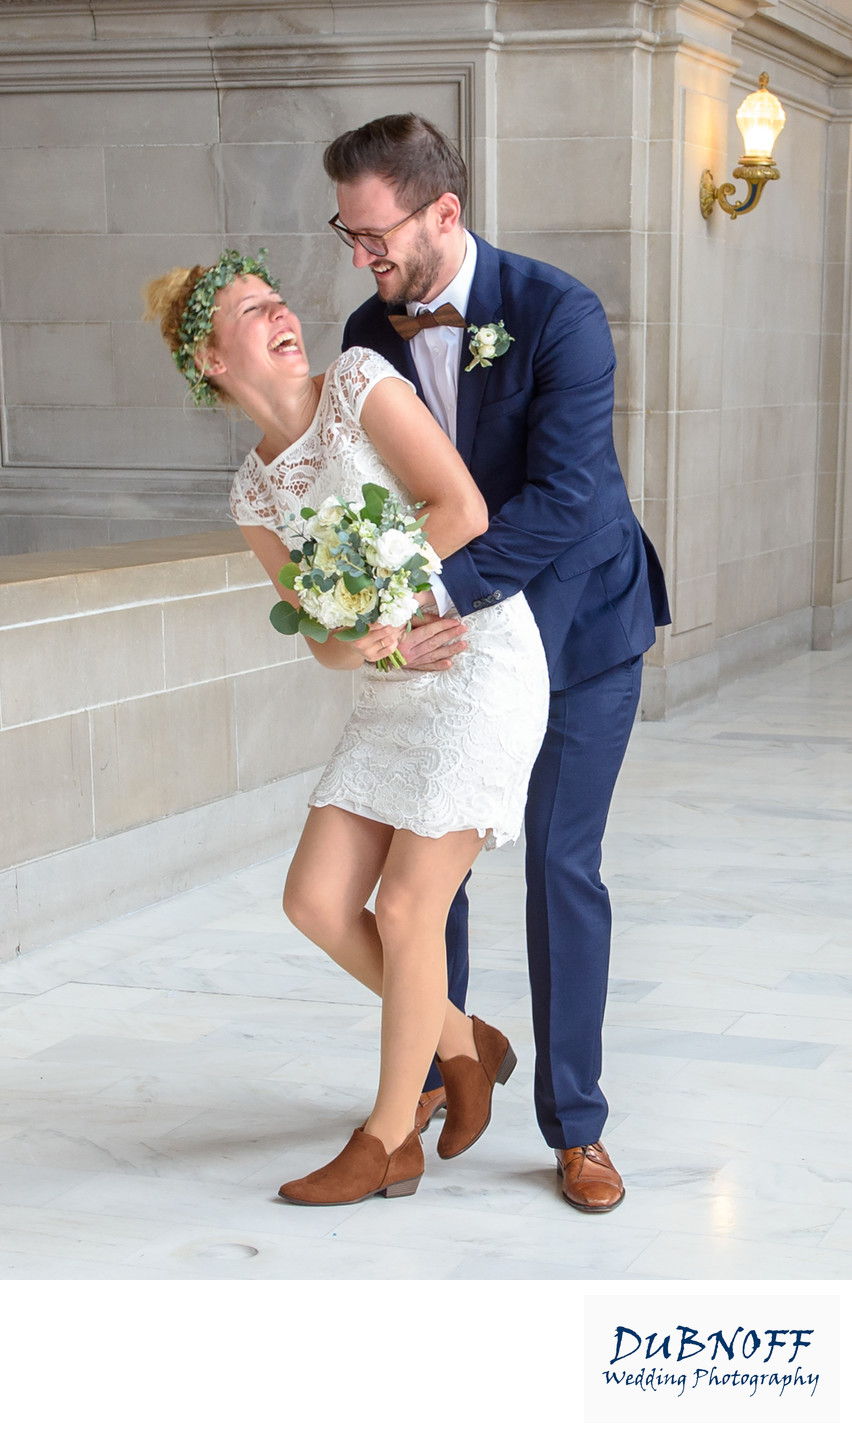 Fun and Candid Wedding Photography at San Francisco City Hall